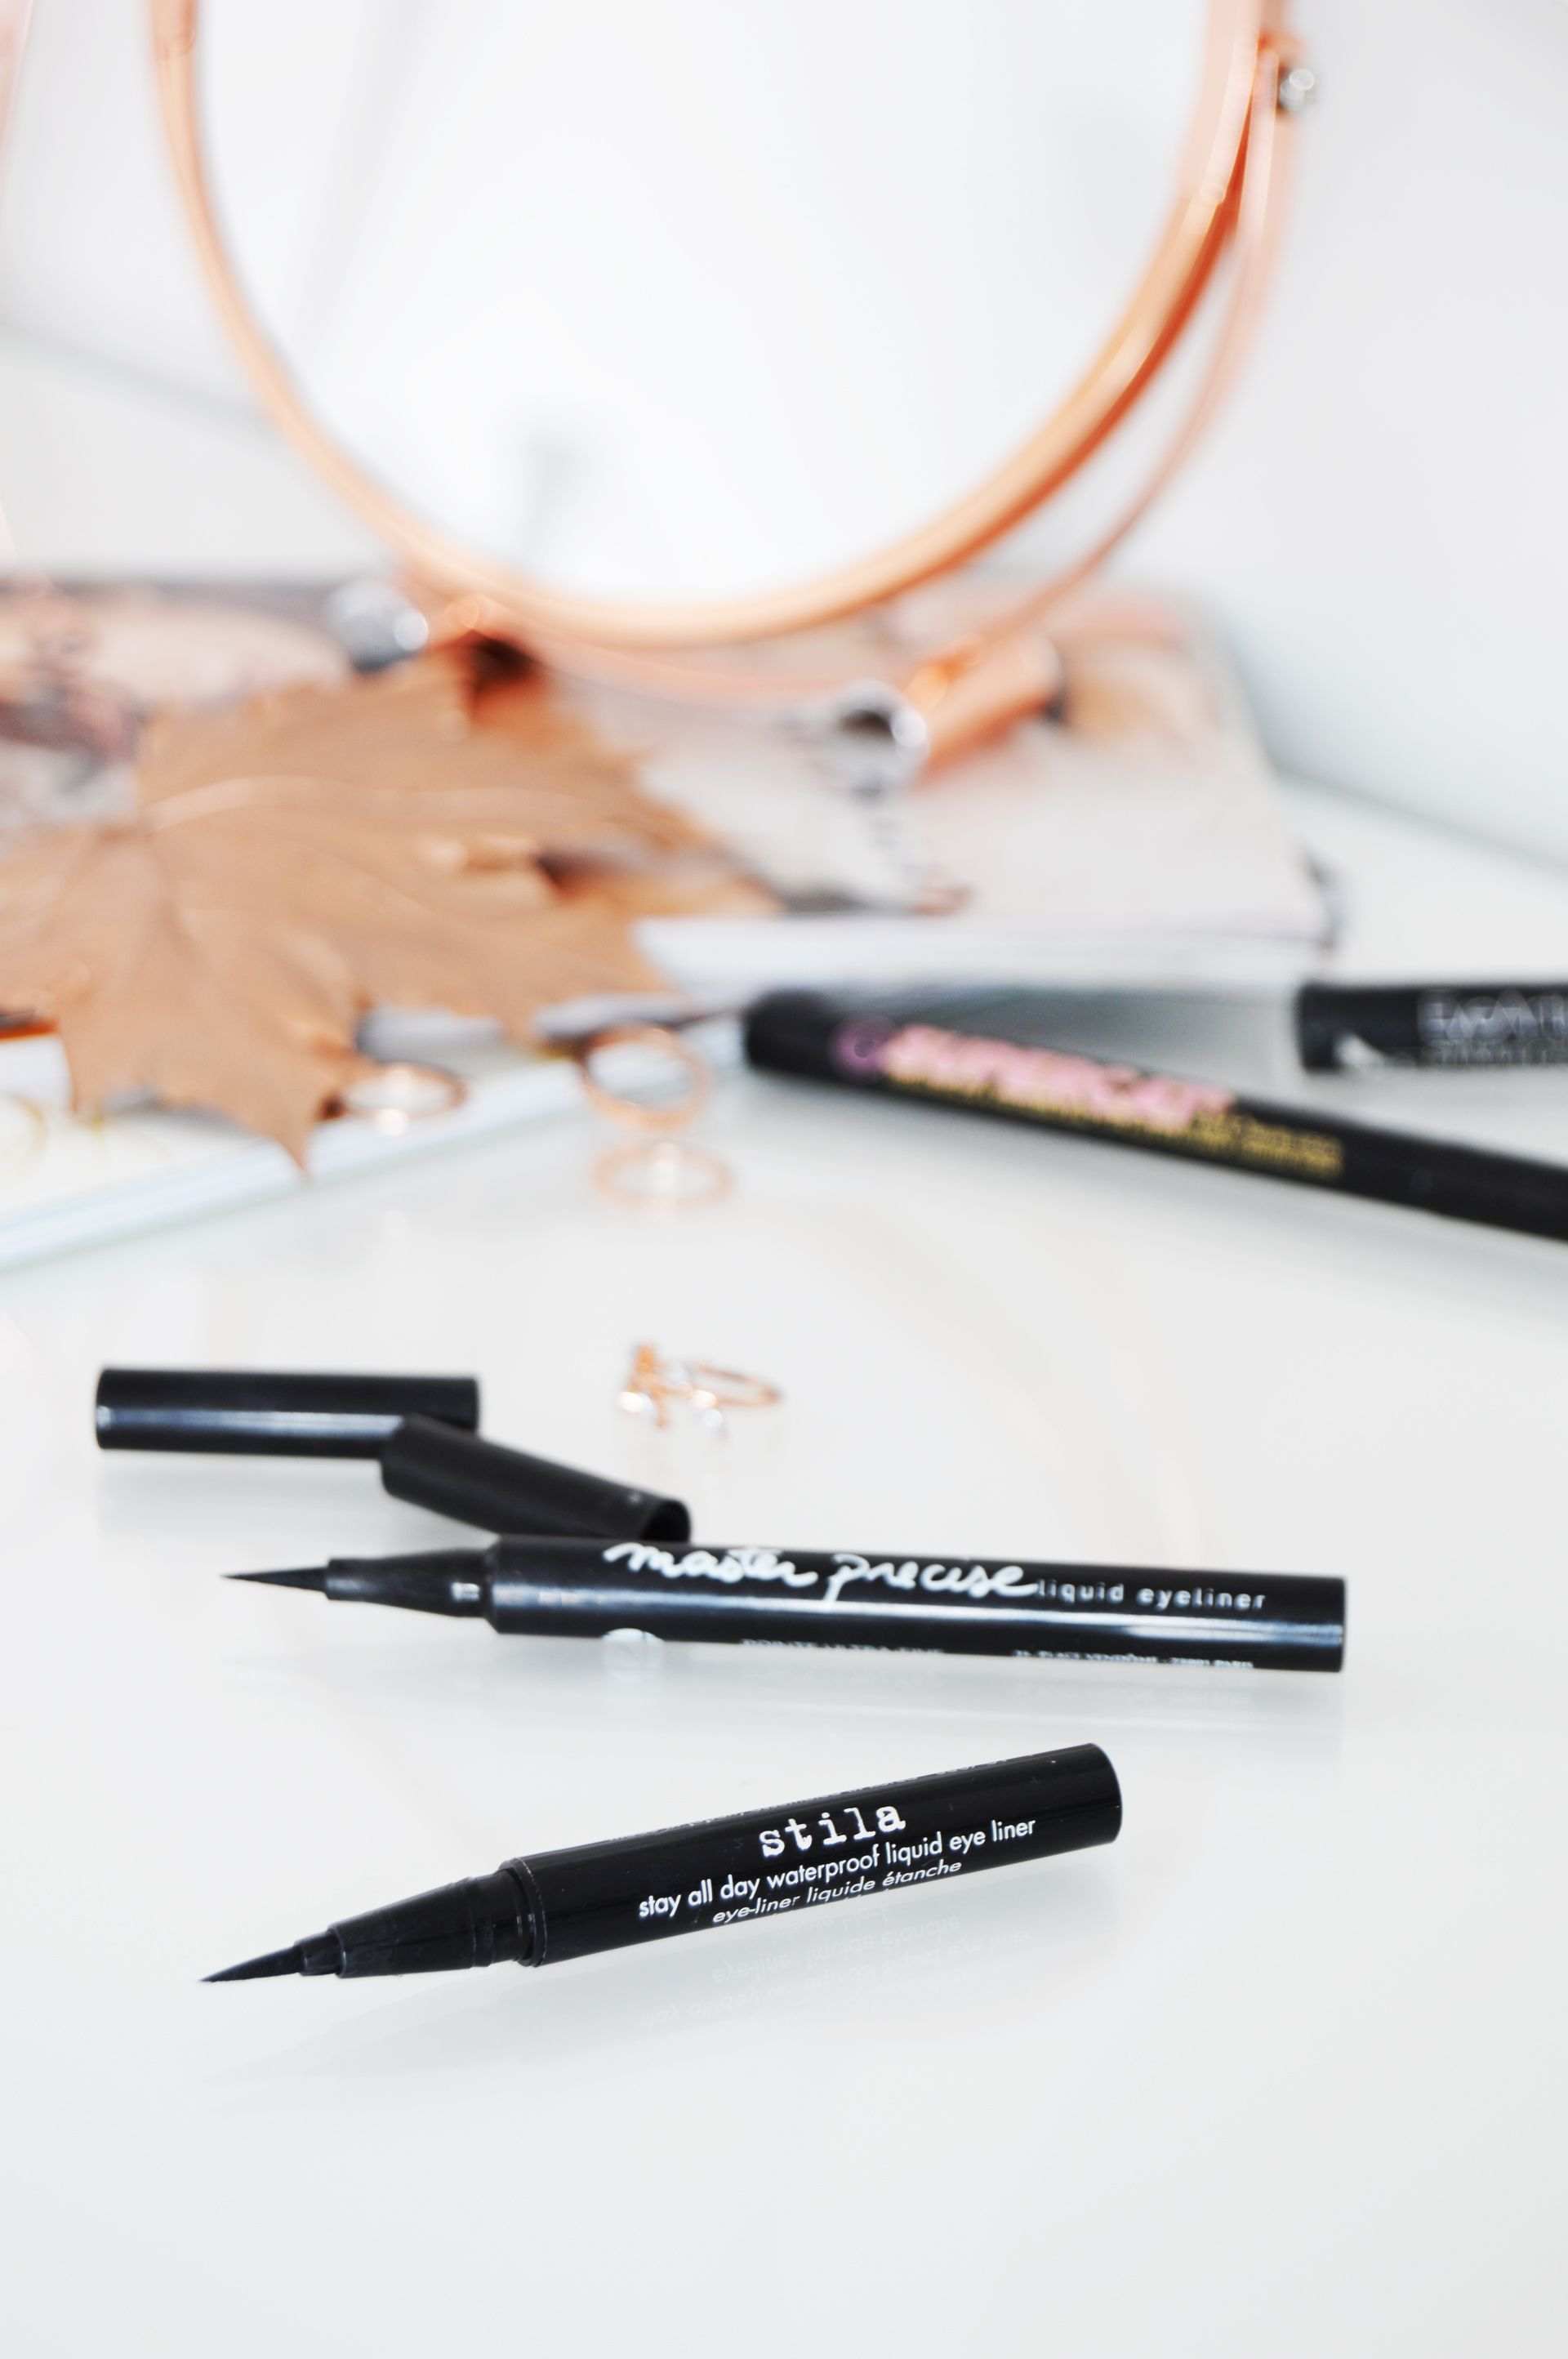 Drugstore vs High End Eyeliner - Stila Stay All Day waterproof liquid eyeliner vs Maybelline Master Precise liquid eyeliner. Maybelline one is the good dupe of Stila one. Felt tip liner and the pigmentation are almost the same.